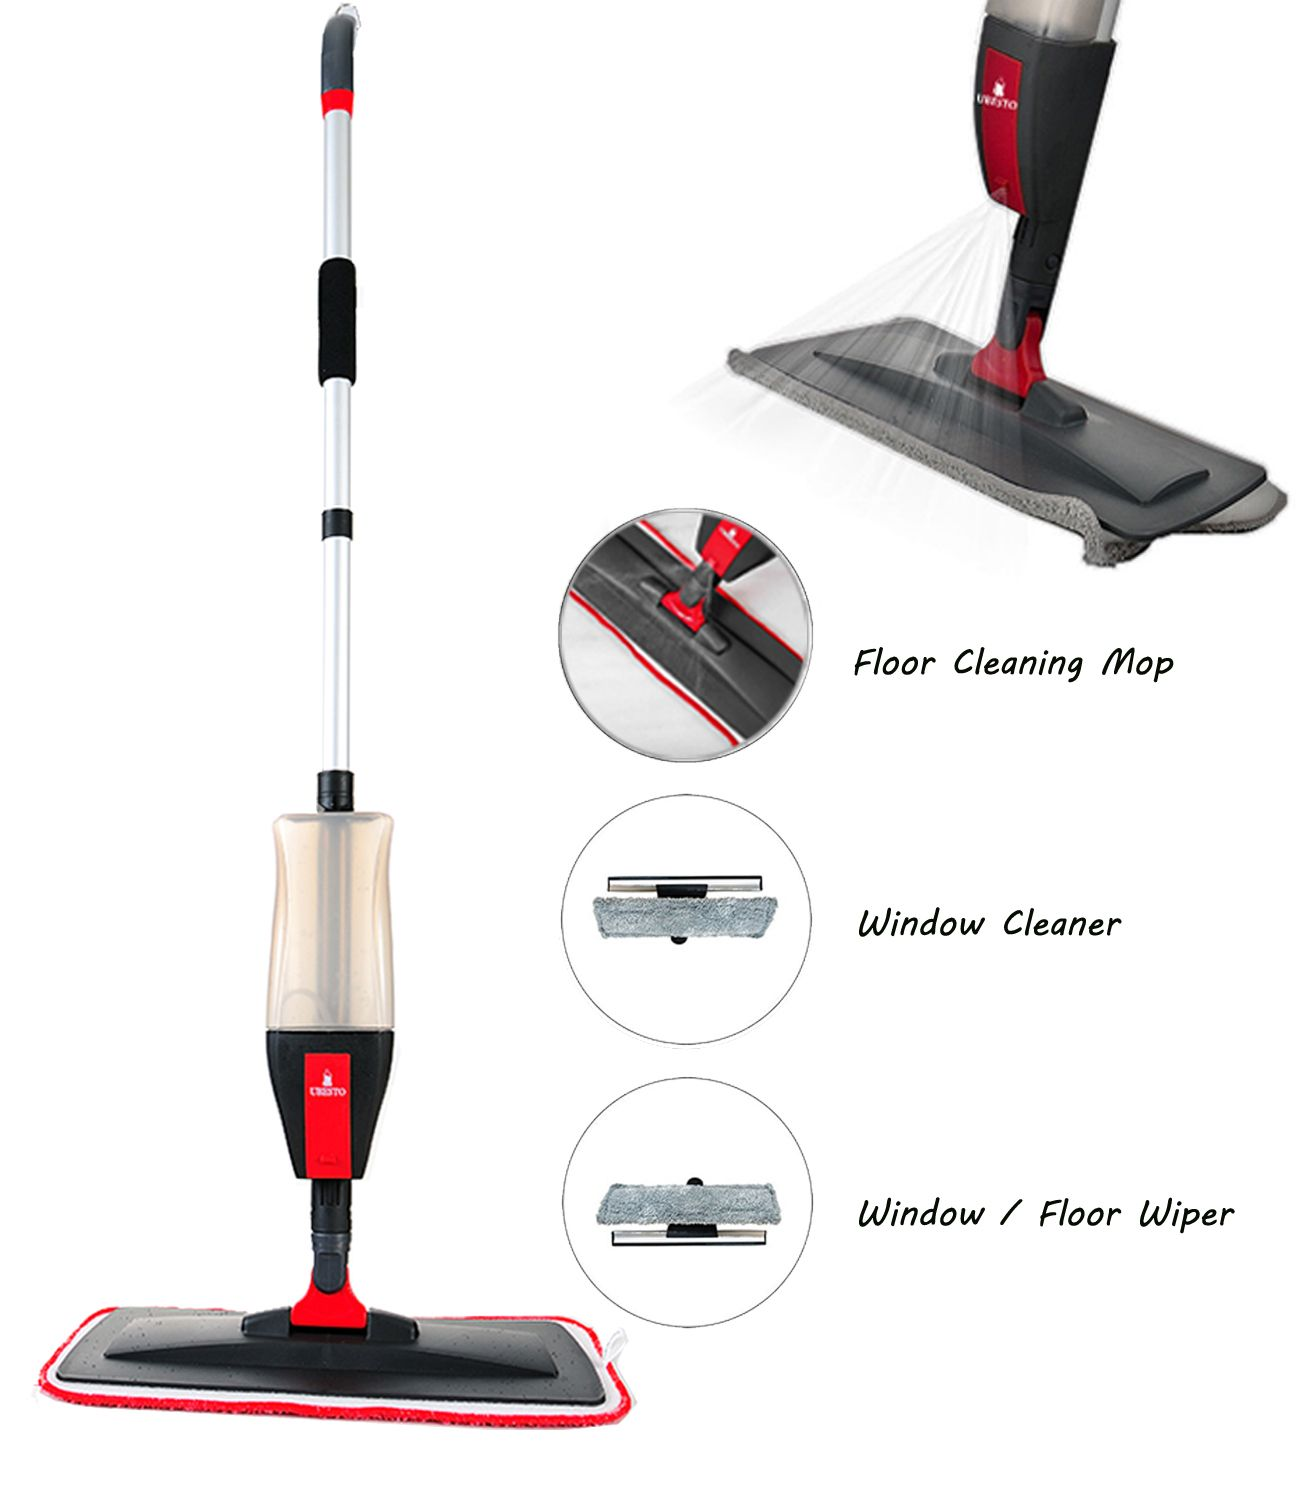 Floor Spray Mop Kit With 3 In 1 Function Cleaning Mop Set With Spray Spray Mop Dry Mop Dust Mop Microfiber Mop Pads Microfiber Mops Window Cleaner